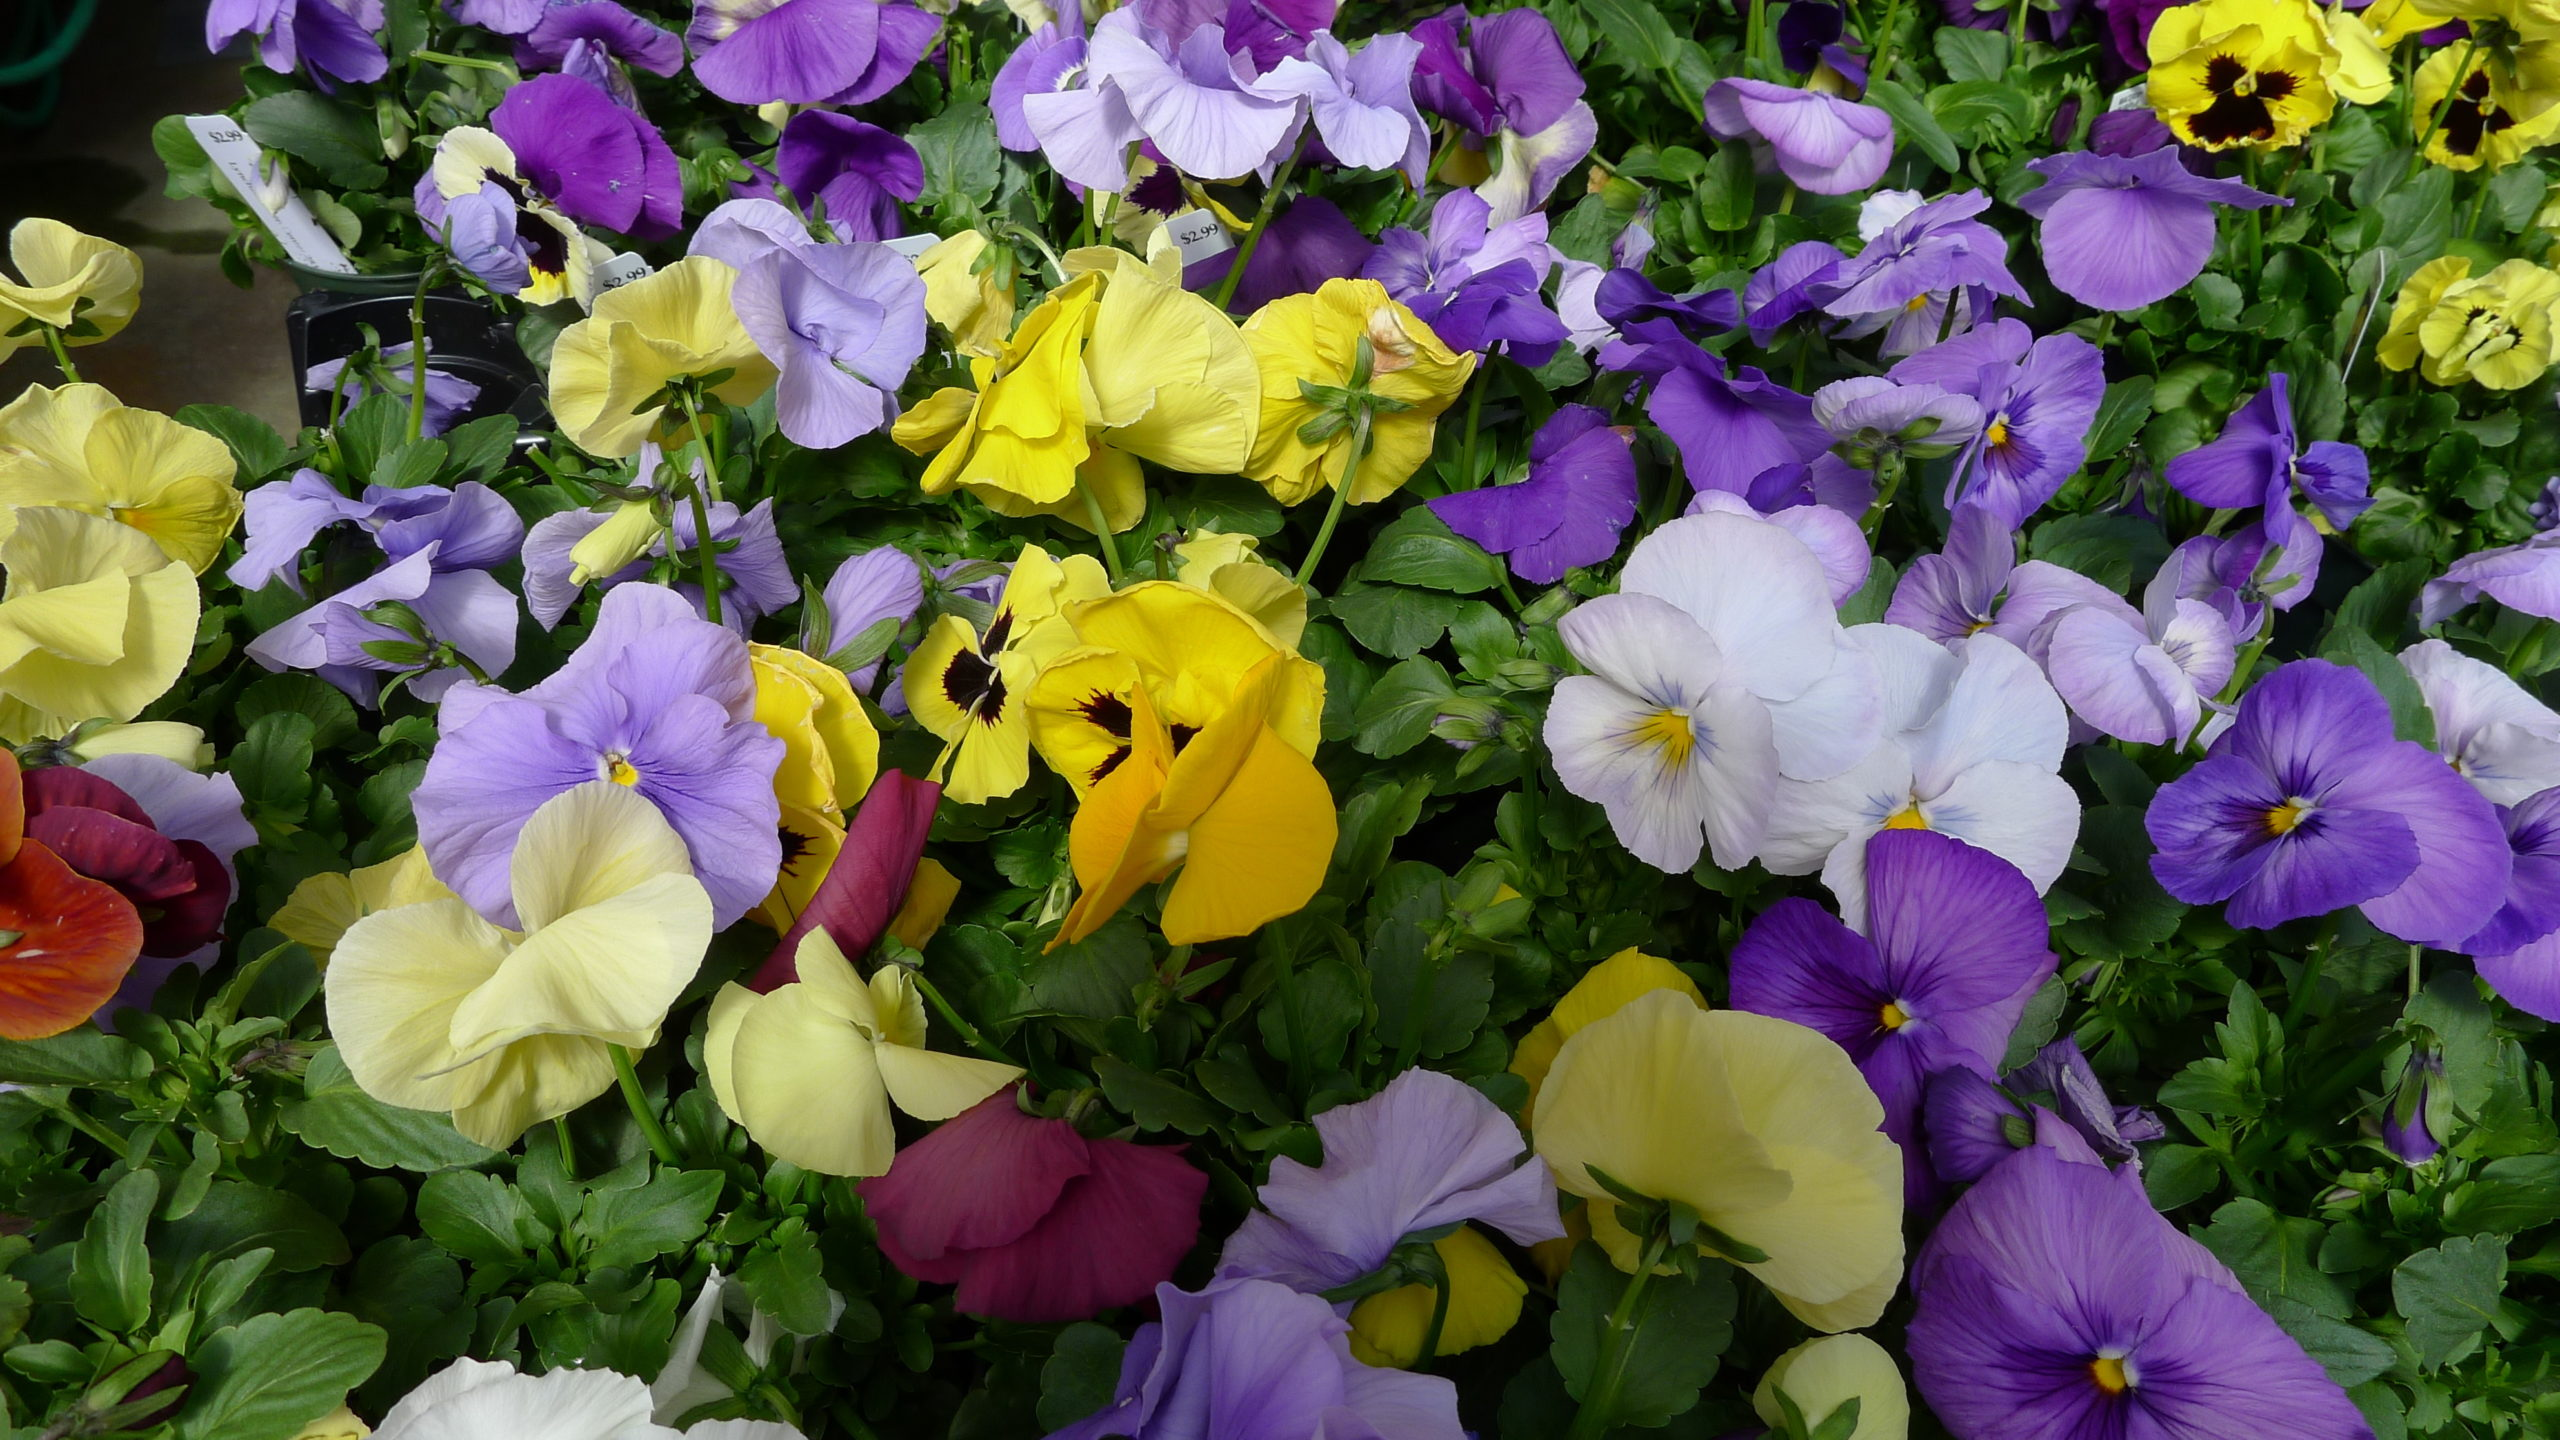 You can find lots of pansy and Viola offerings right now at local garden centers.